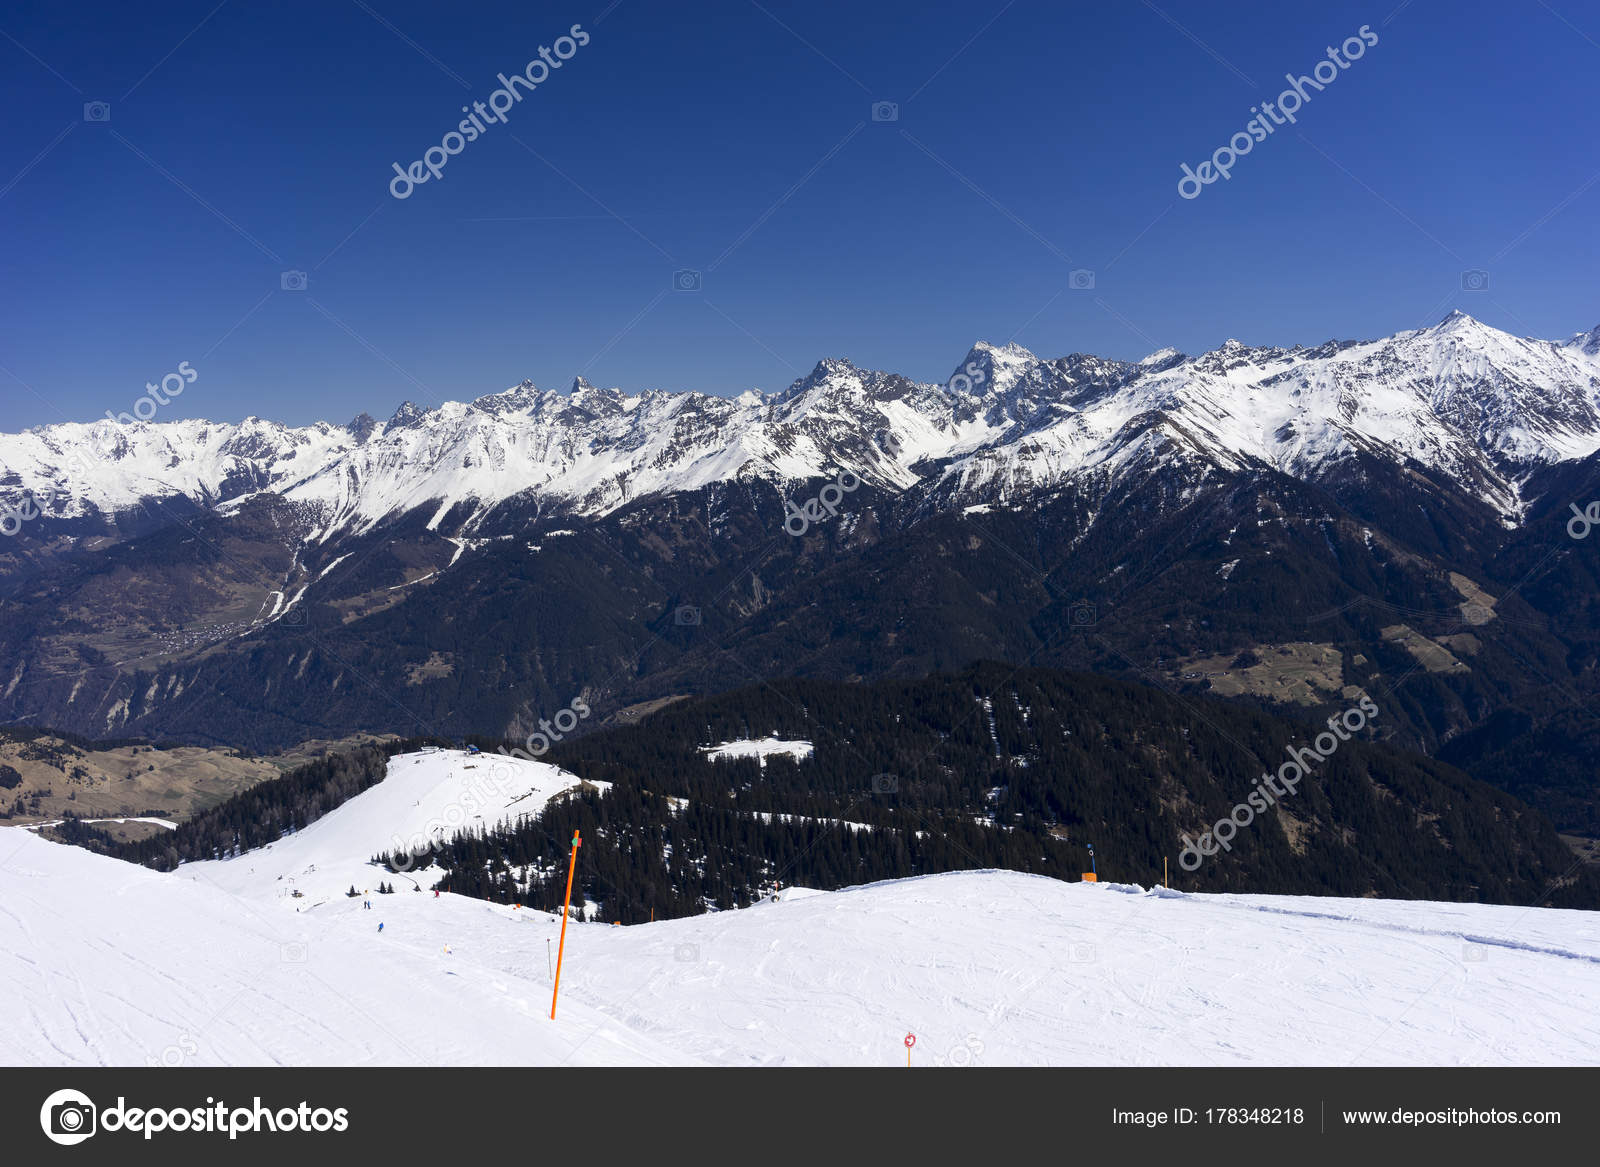 alpine ski resort serfaus fiss ladis in austria. — stock photo